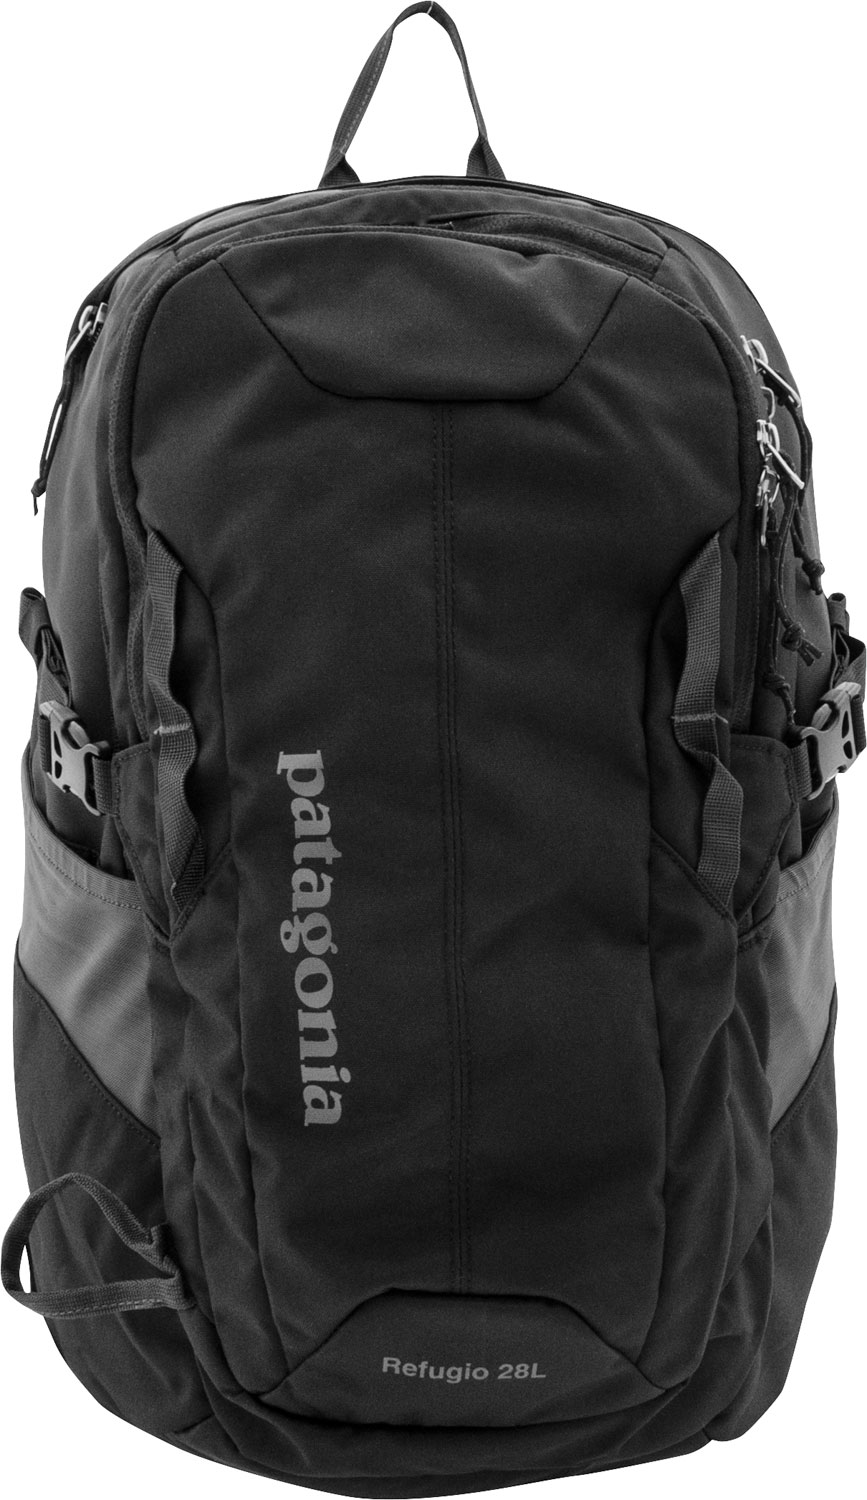 Daypack & Carry On Patagonia Backpackp Image